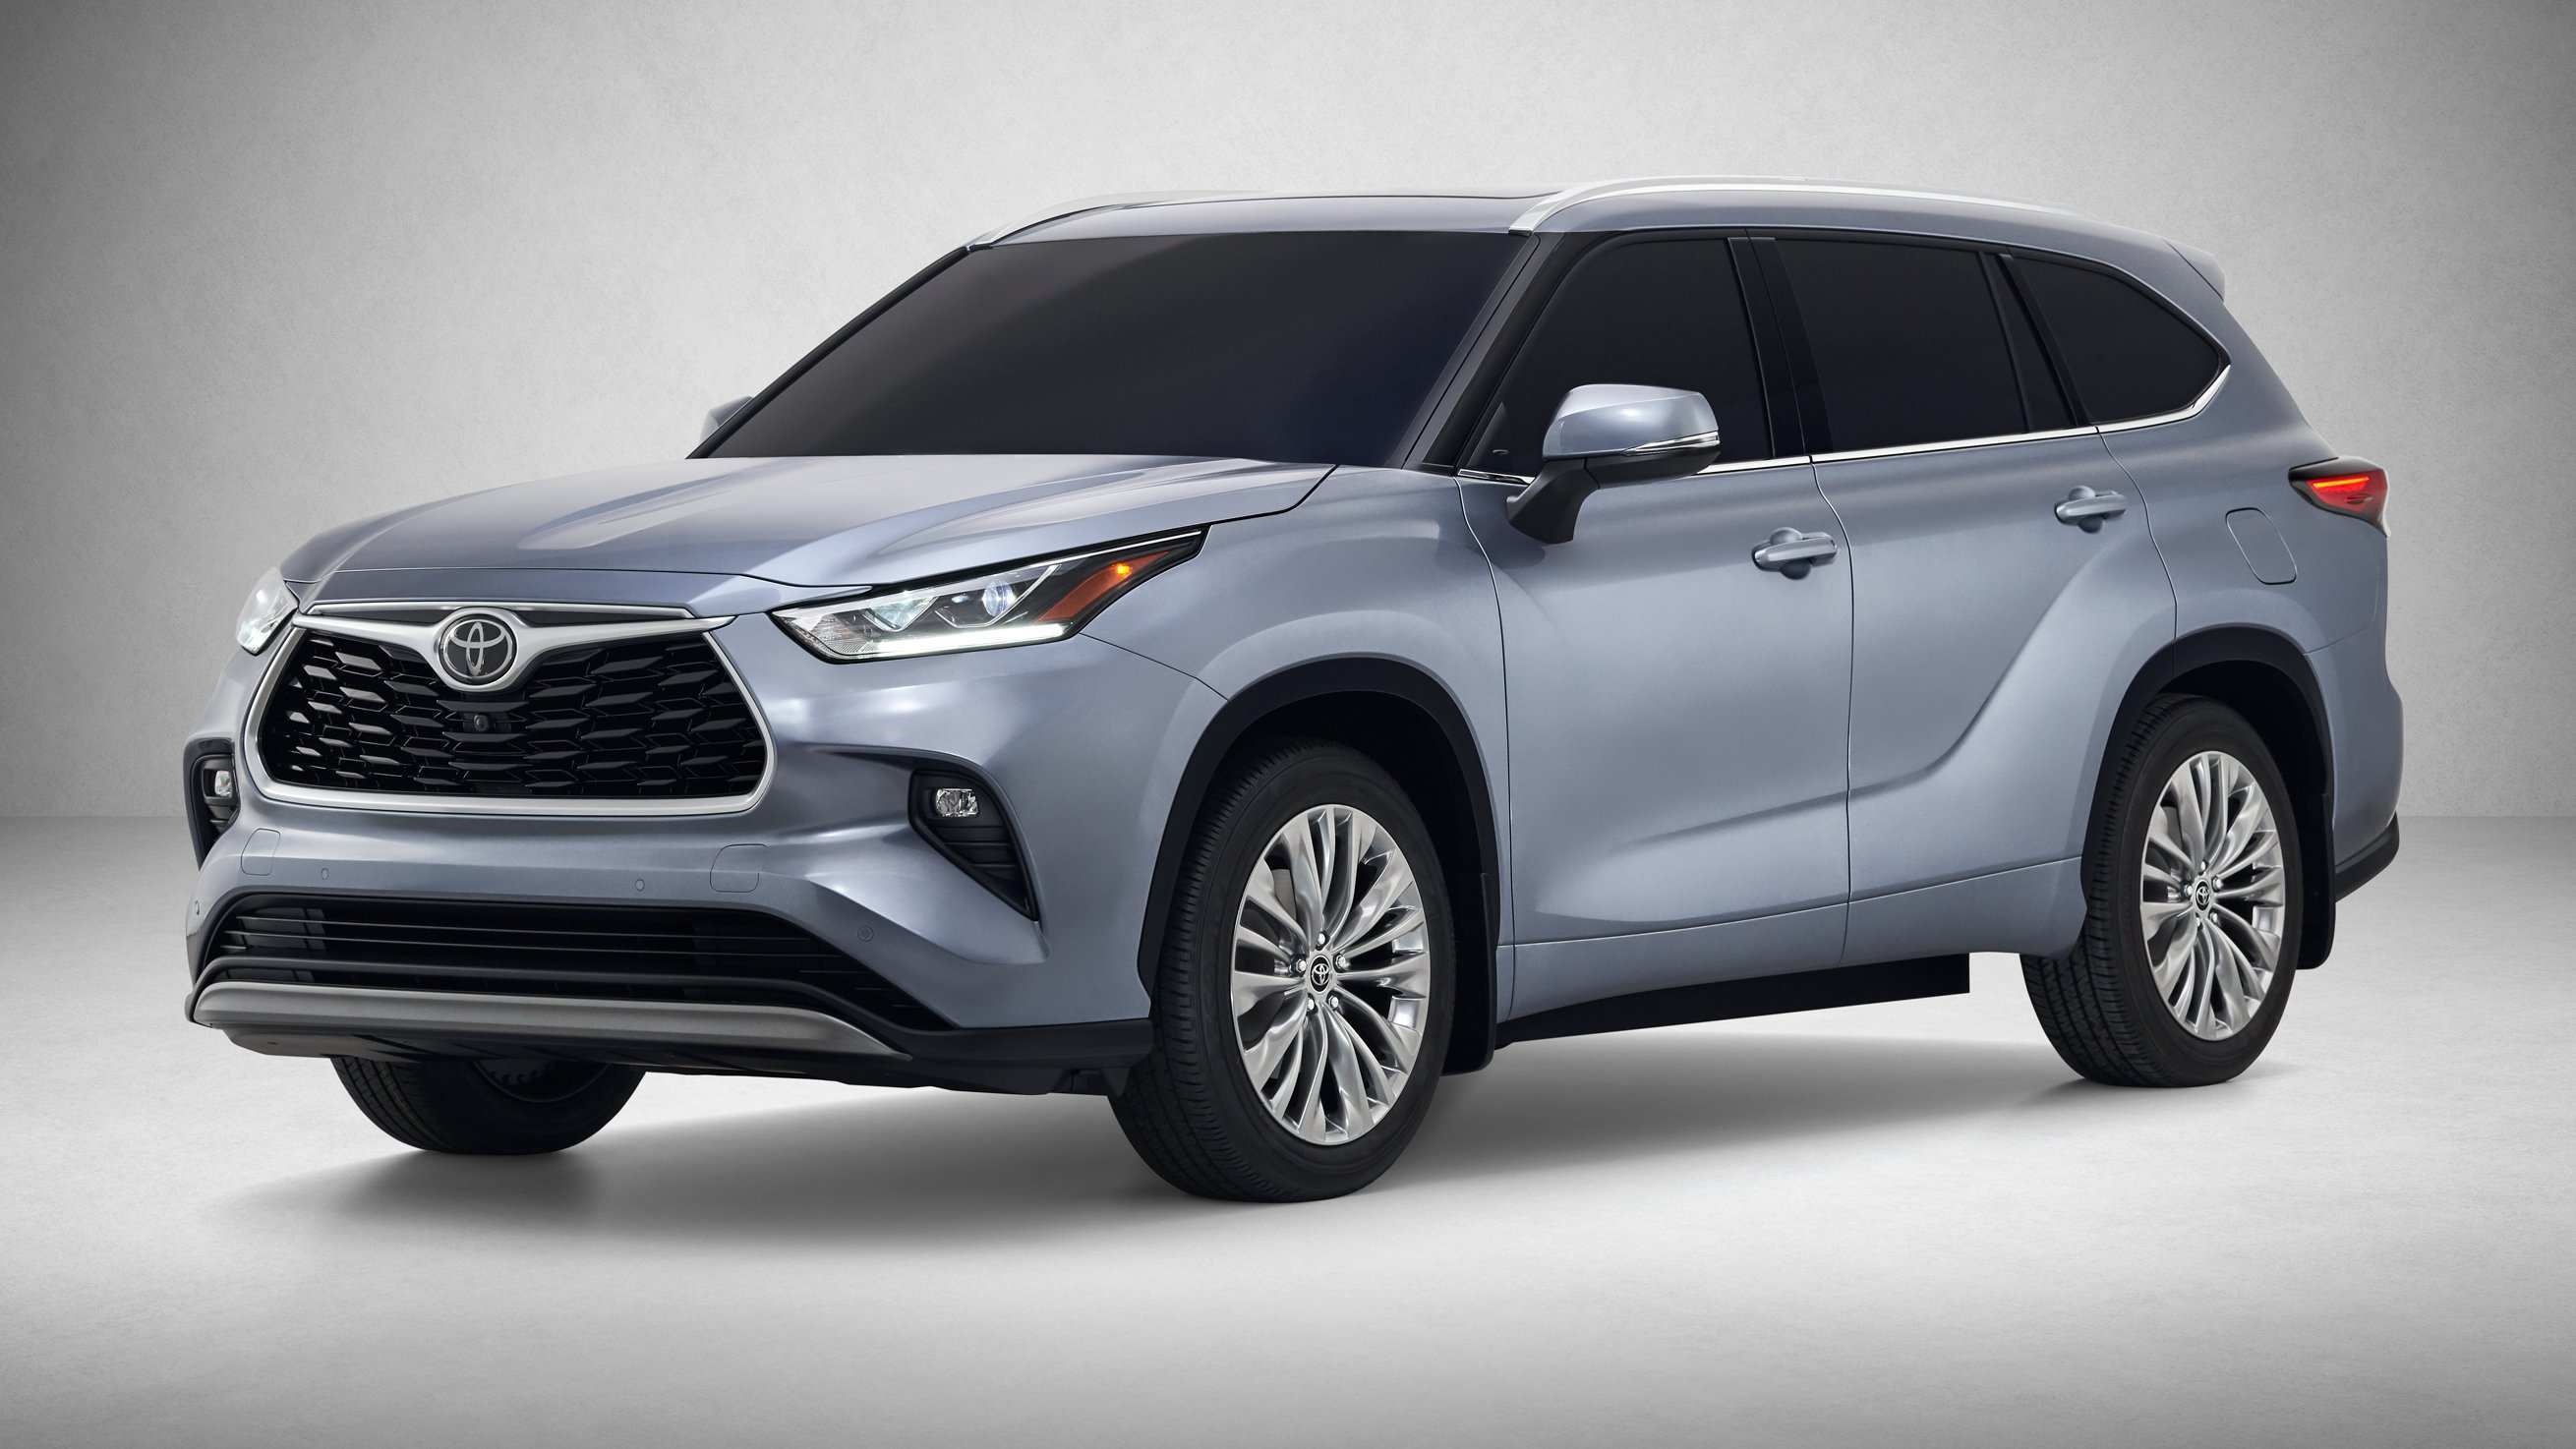 67 The Toyota Kluger 2020 Model Release Date